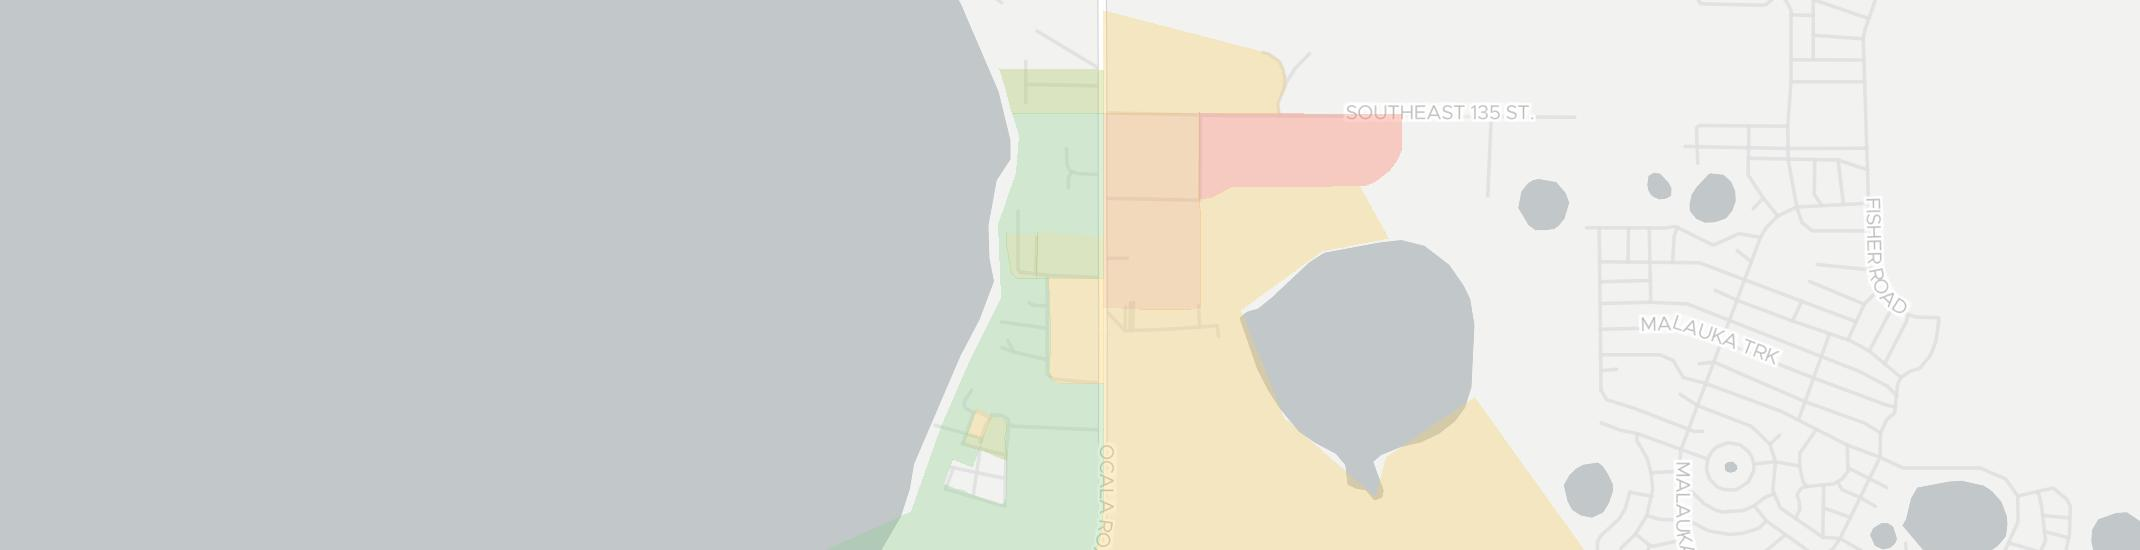 Eastlake Weir Internet Competition Map. Click for interactive map.